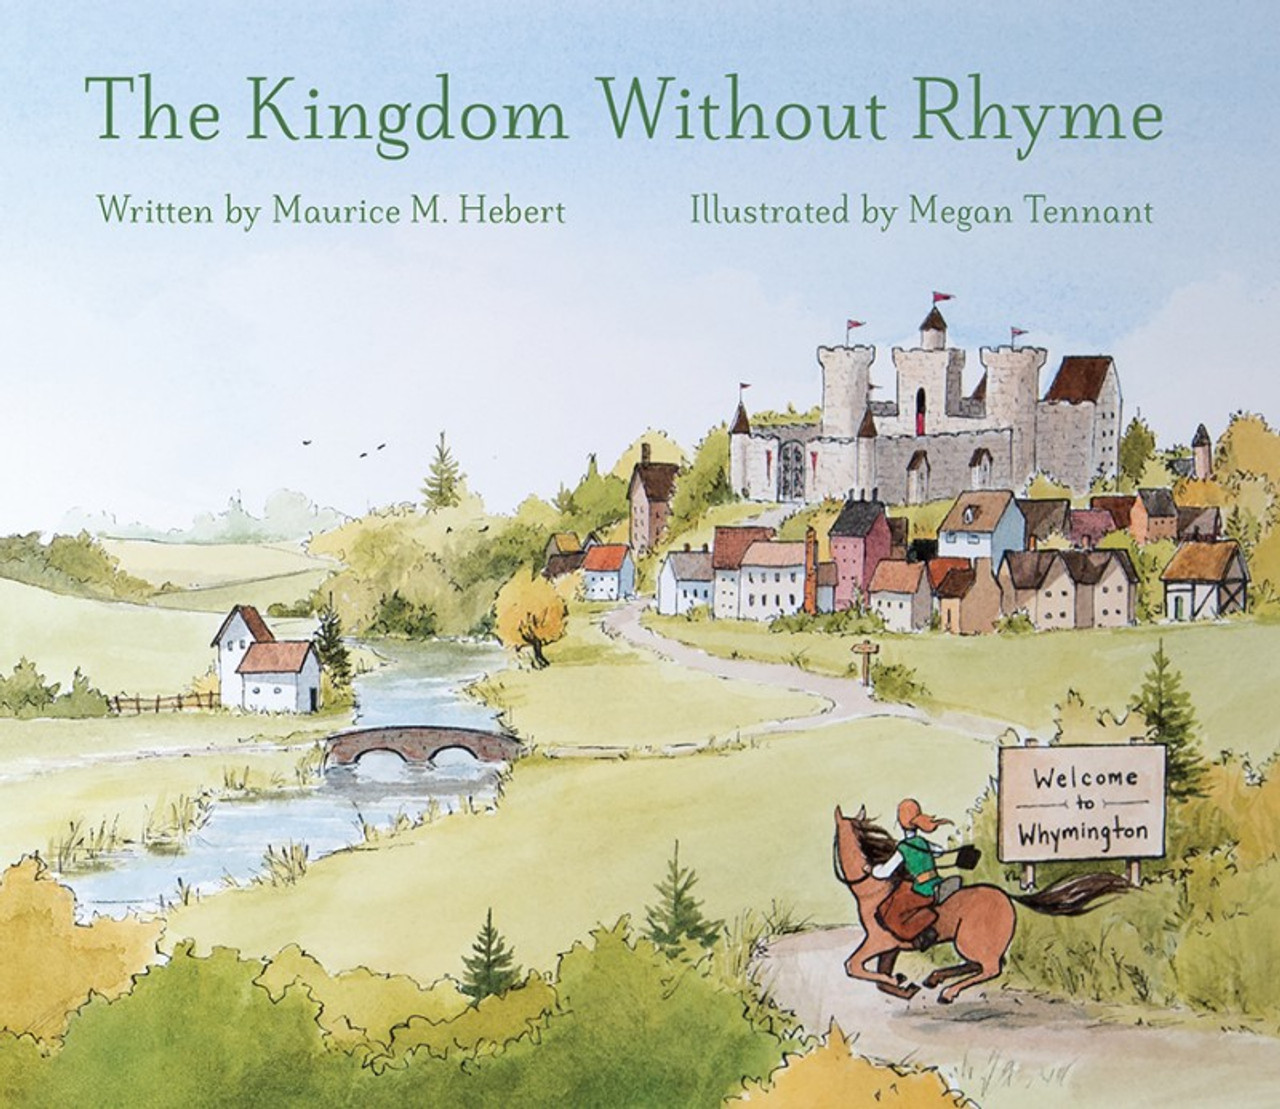 The Kingdom Without Rhyme